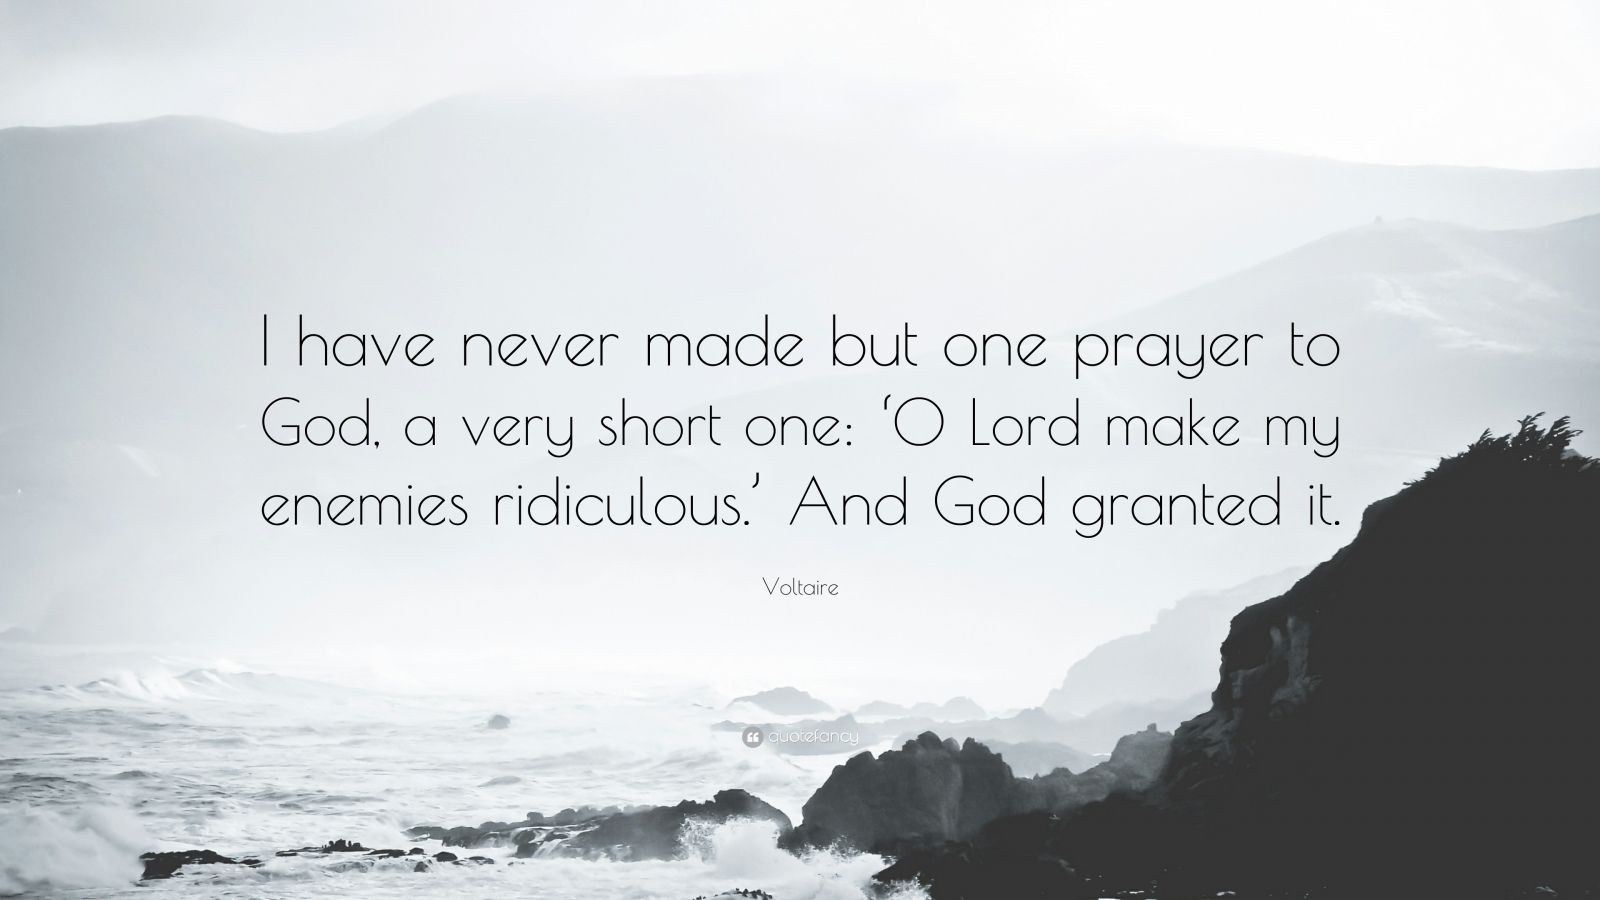 """Voltaire Quote: """"I have never made but one prayer to God, a very short one: 'O Lord make my enemies ridiculous.' And God granted it."""""""